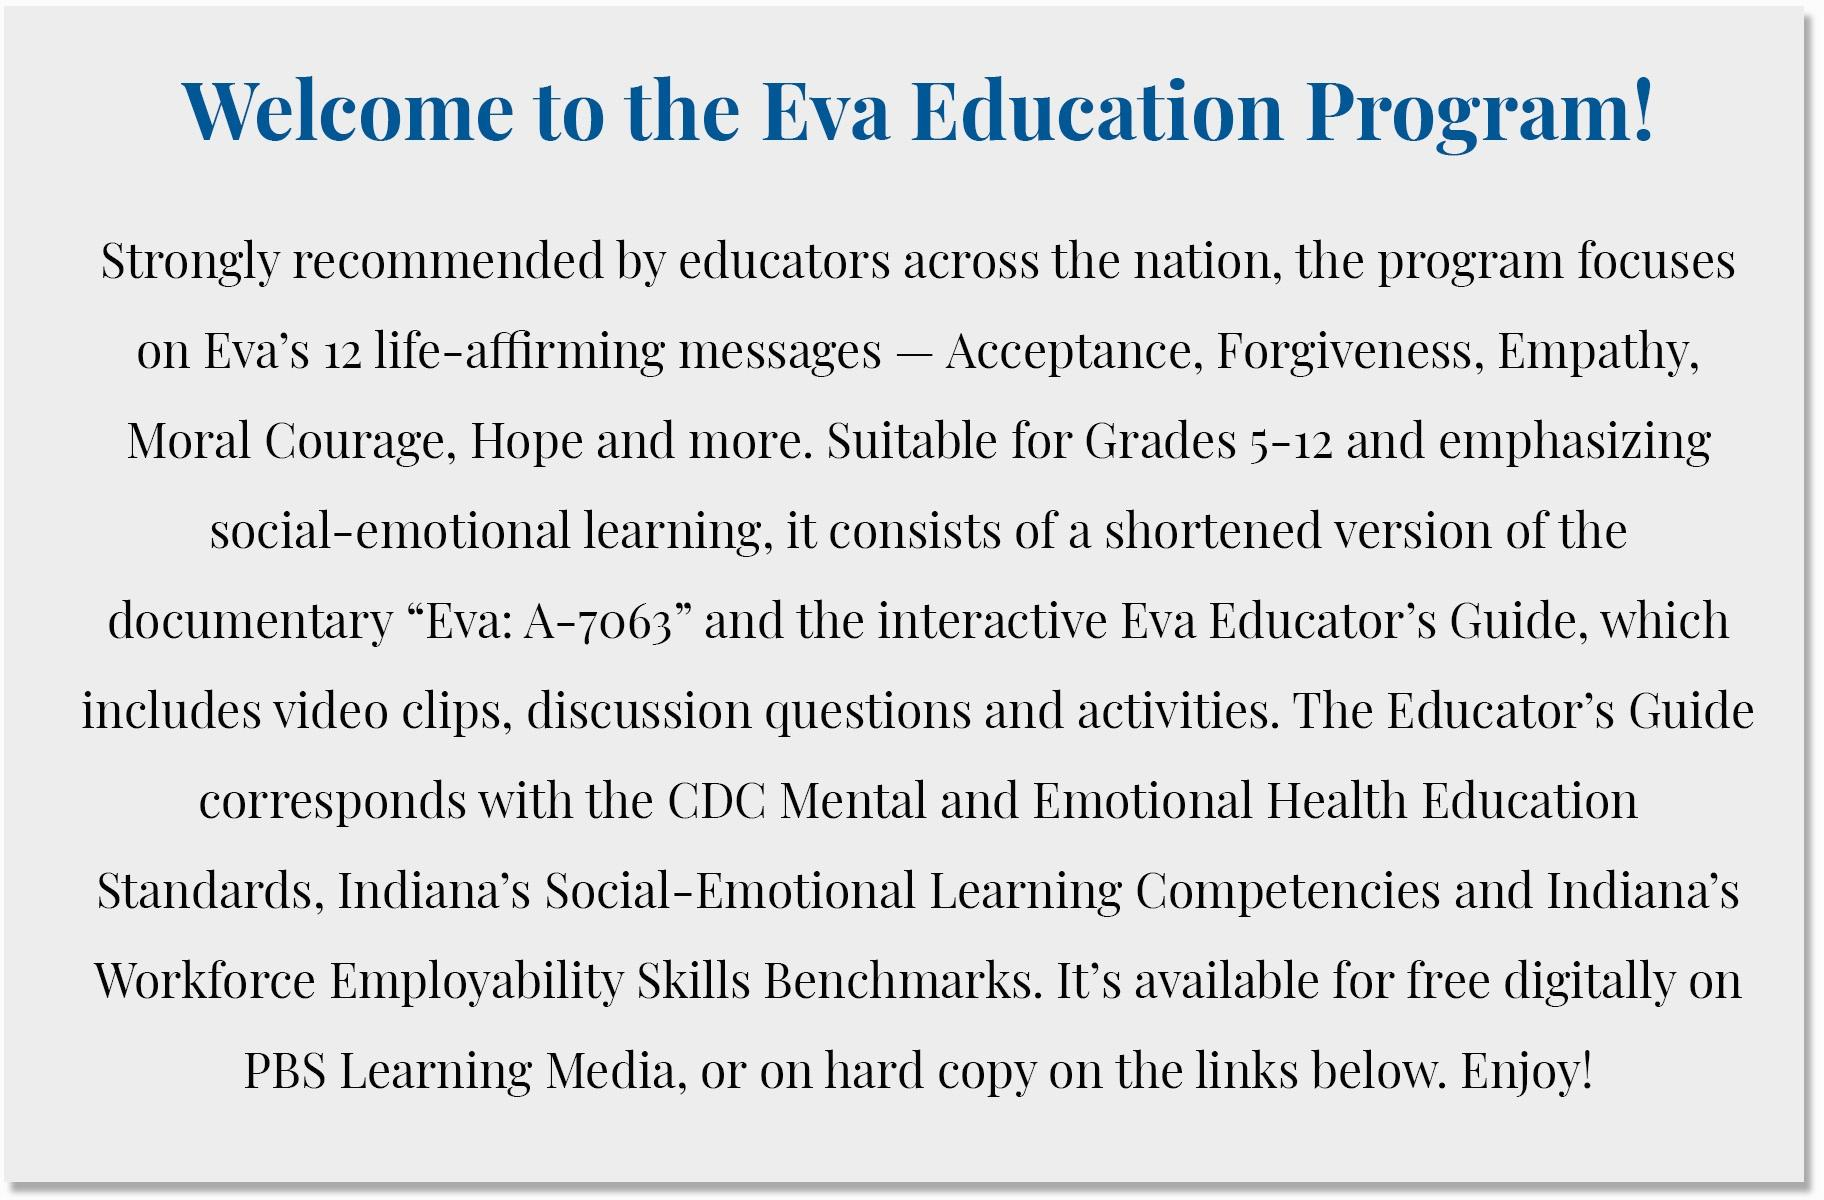 """Welcome to the Eva Education Program!   Strongly recommended by educators across the nation, the program focuses on Eva's 12 life-affirming messages — Acceptance, Forgiveness, Empathy, Moral Courage, Hope and more. Suitable for Grades 5-12 and emphasizing social-emotional learning, it consists of a shortened version of the documentary """"Eva: A-7063"""" and the interactive Eva Educator's Guide, which includes video clips, discussion questions and activities. The Educator's Guide corresponds with the CDC Mental and Emotional Health Education Standards, Indiana's Social-Emotional Learning Competencies and Indiana's Workforce Employability Skills Benchmarks. It's available for free digitally on PBS Learning Media, or on hard copy on the links below. Enjoy!"""